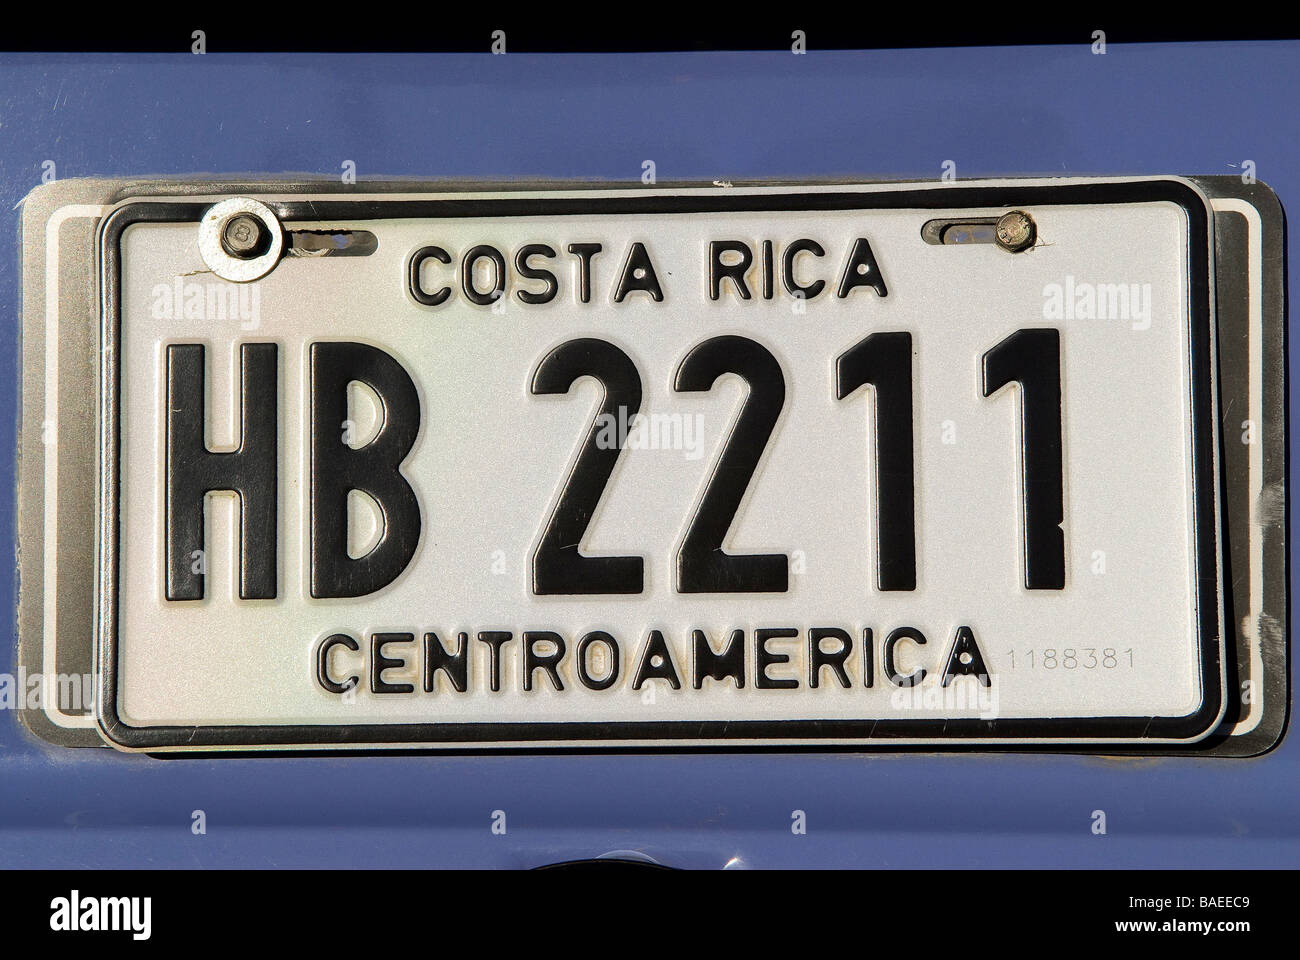 Car Number Plate Stock Photos & Car Number Plate Stock Images - Alamy